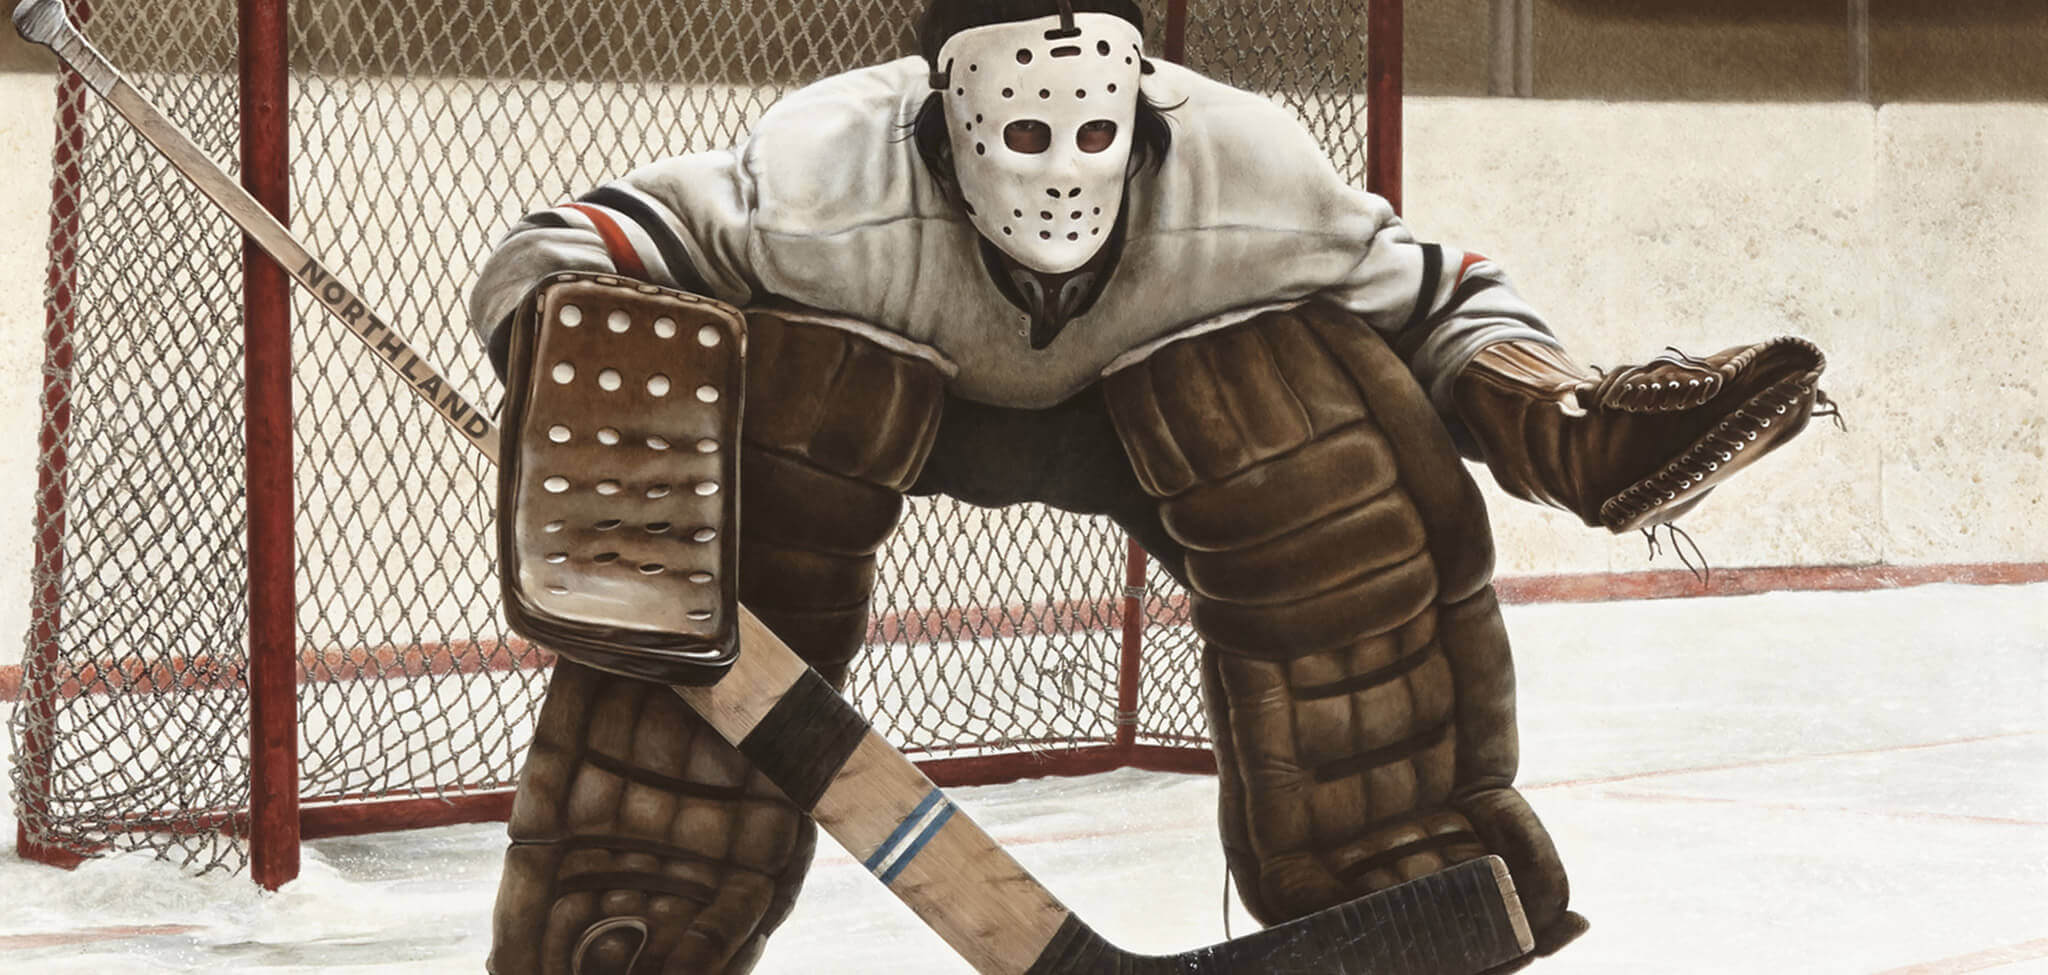 Art Gallery of Hamilton - Ken Danby: Beyond the Crease